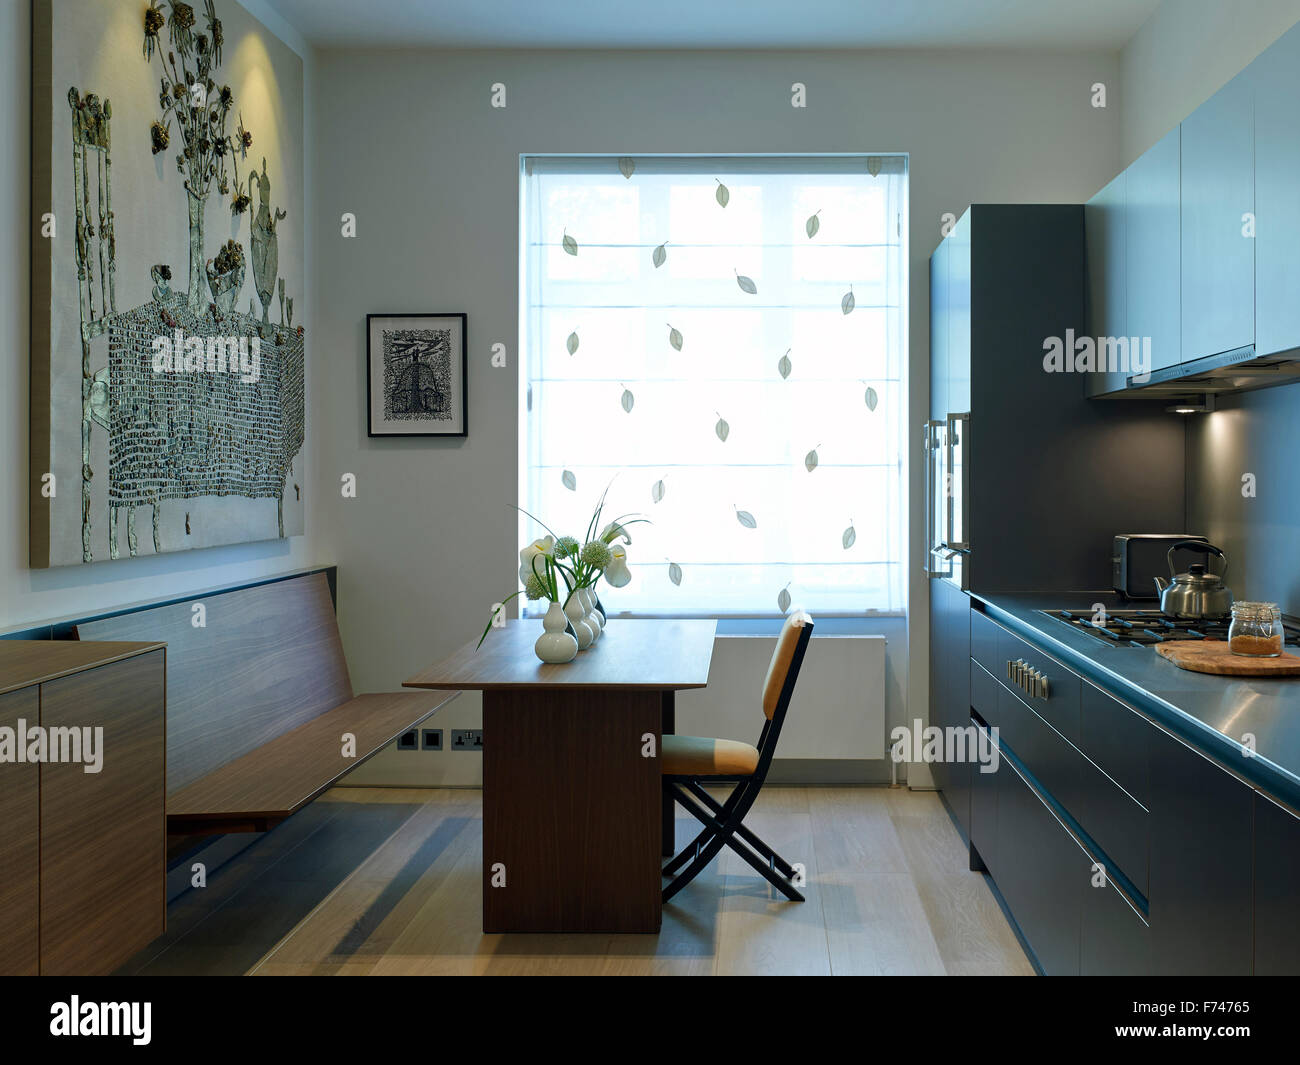 Bench Seat And Table At Window In Kitchen Of Chelsea Apartment Stock